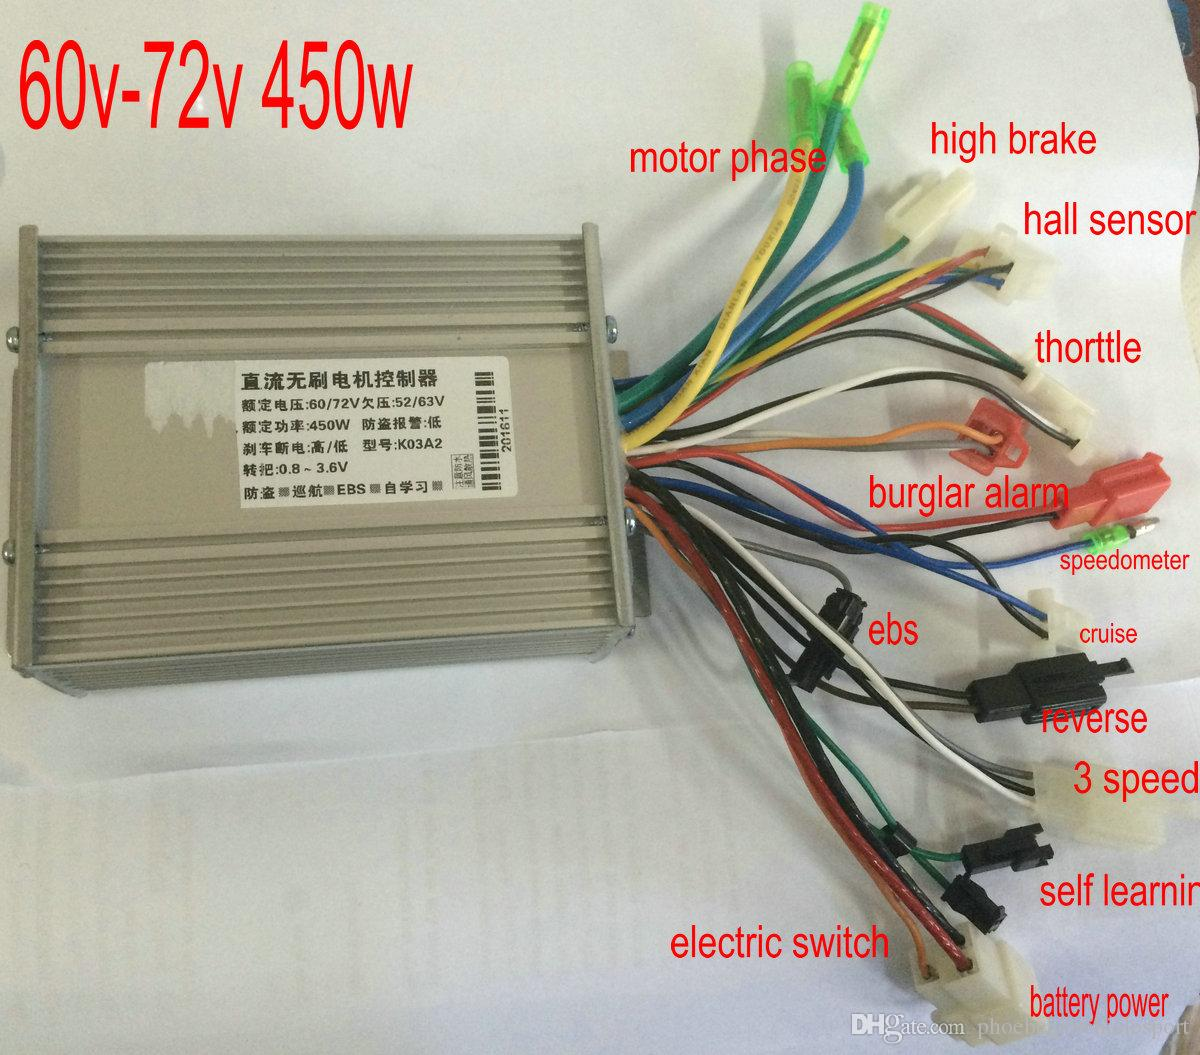 2019 24v36v48v60v72v 400w450w bldc motor controller. Black Bedroom Furniture Sets. Home Design Ideas